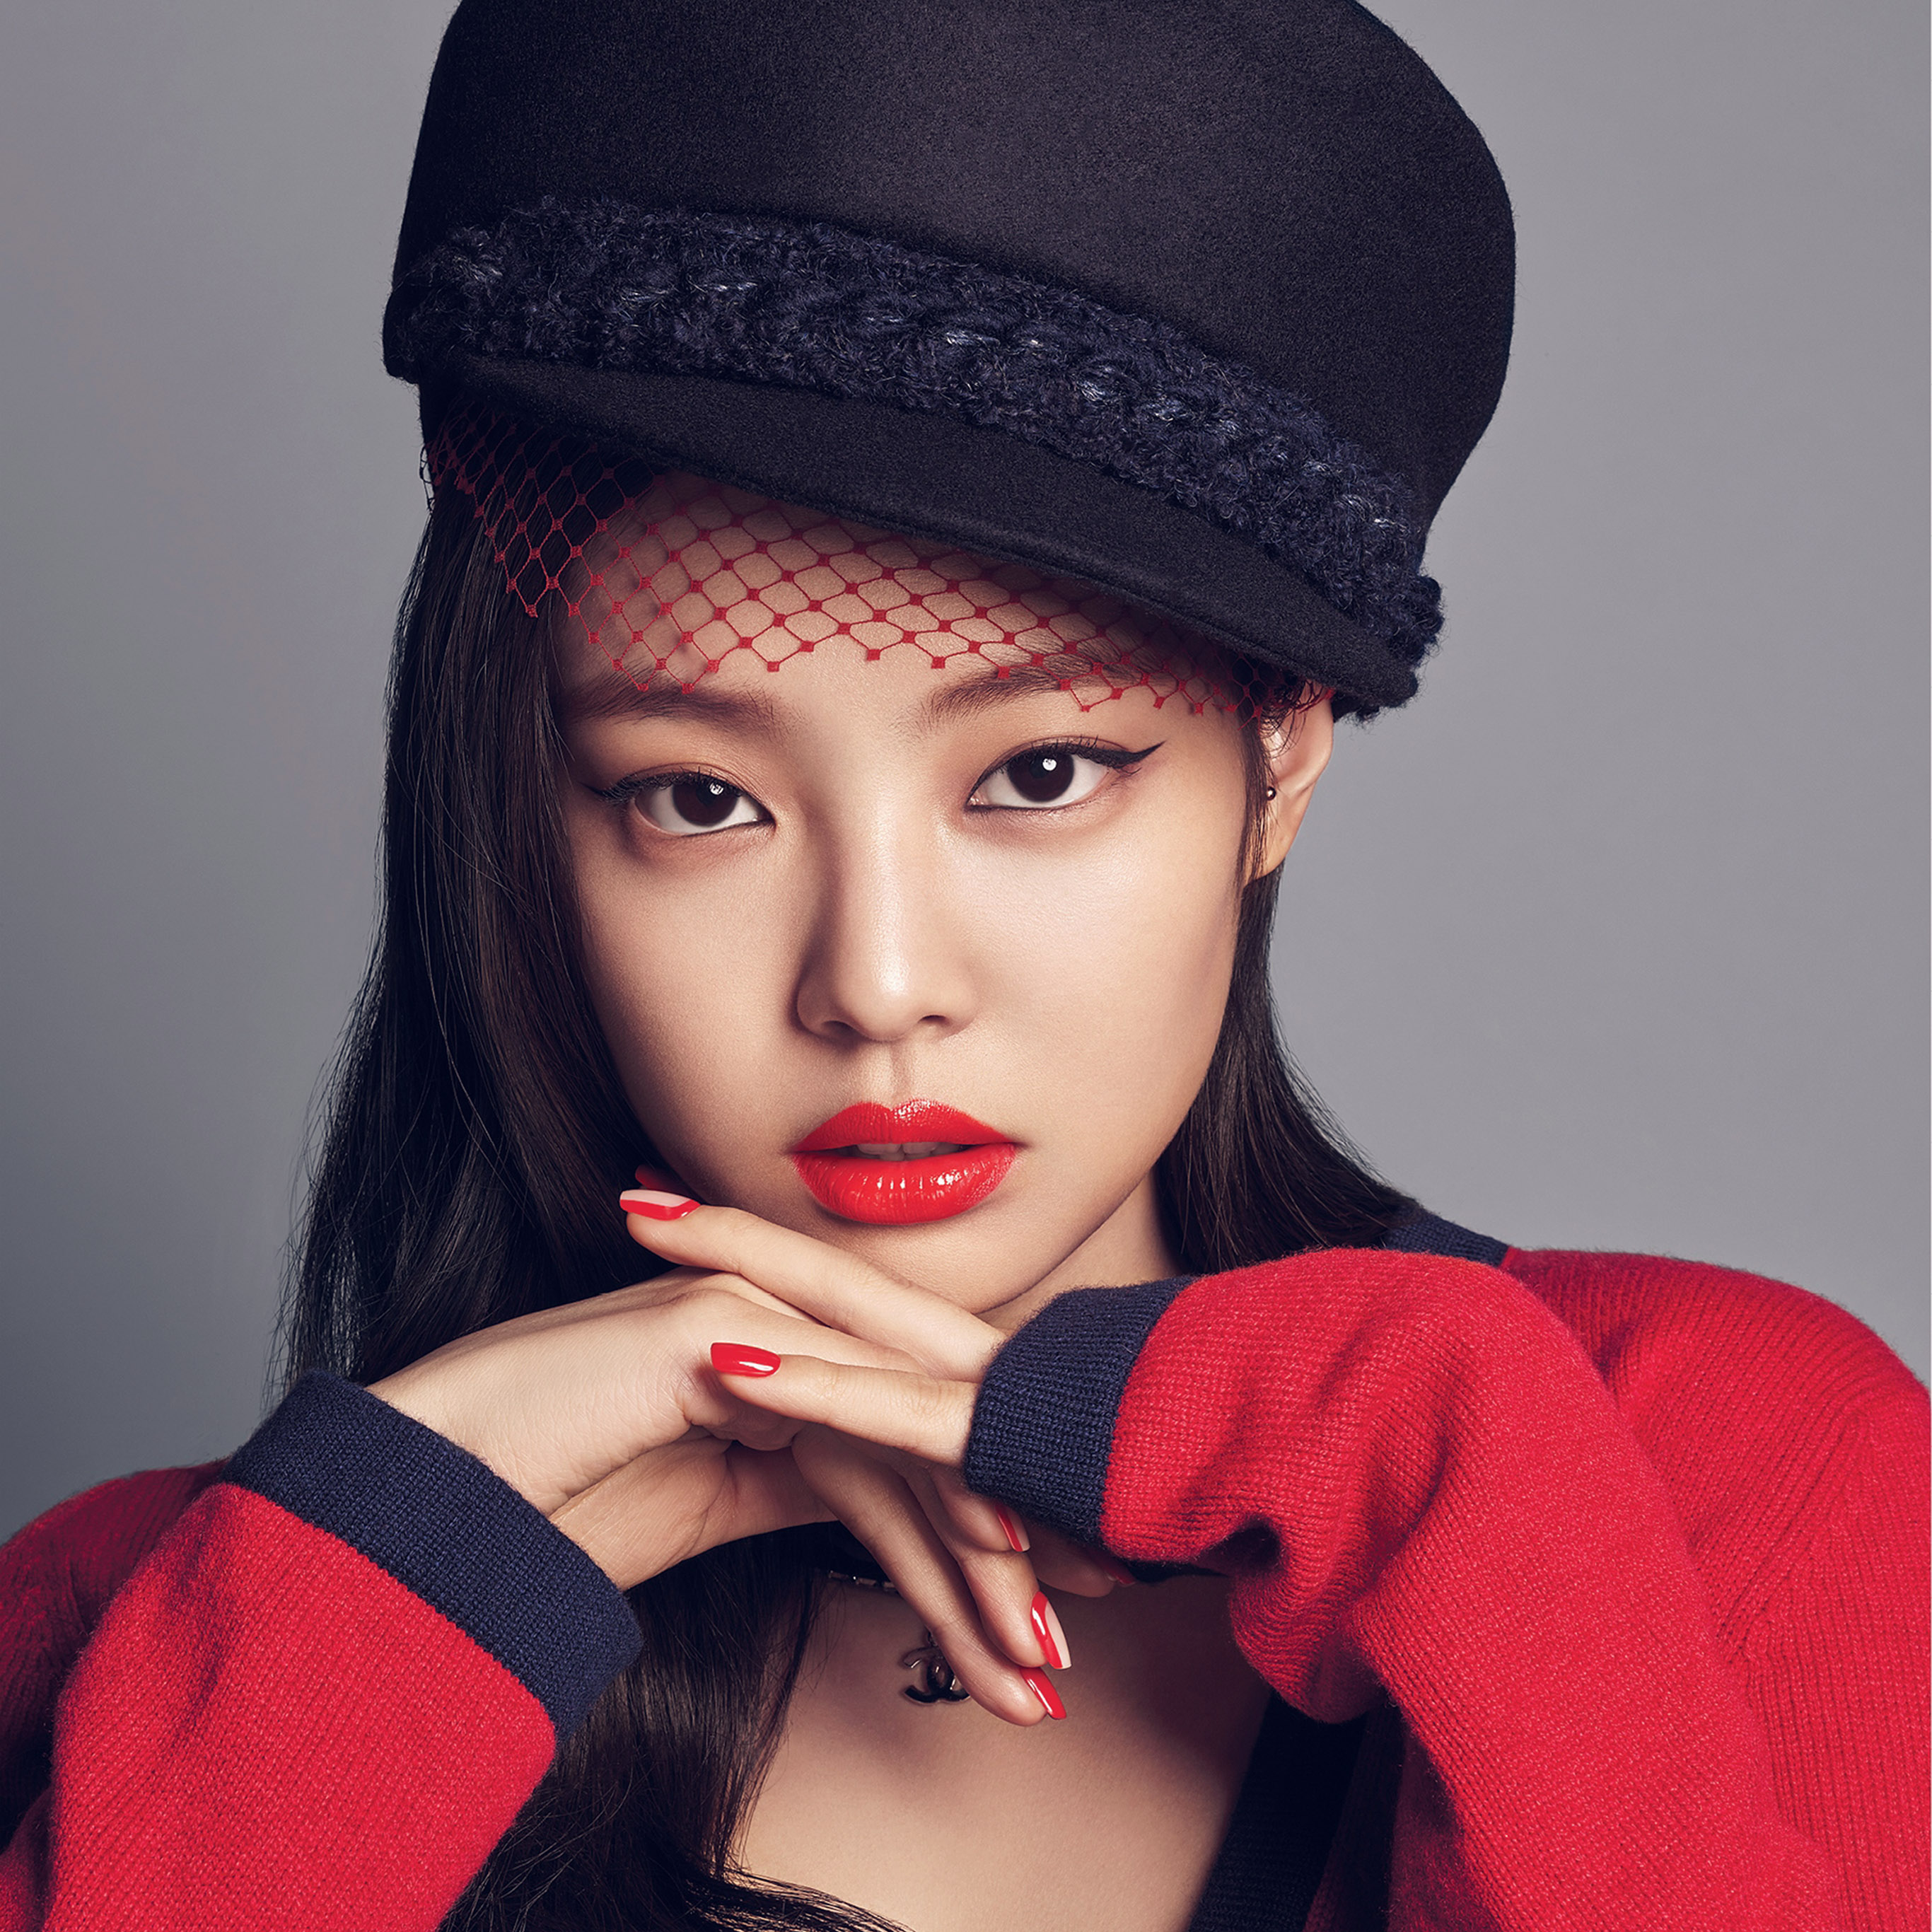 Hp37 Blackpink Girl Kpop Jennie Wallpaper